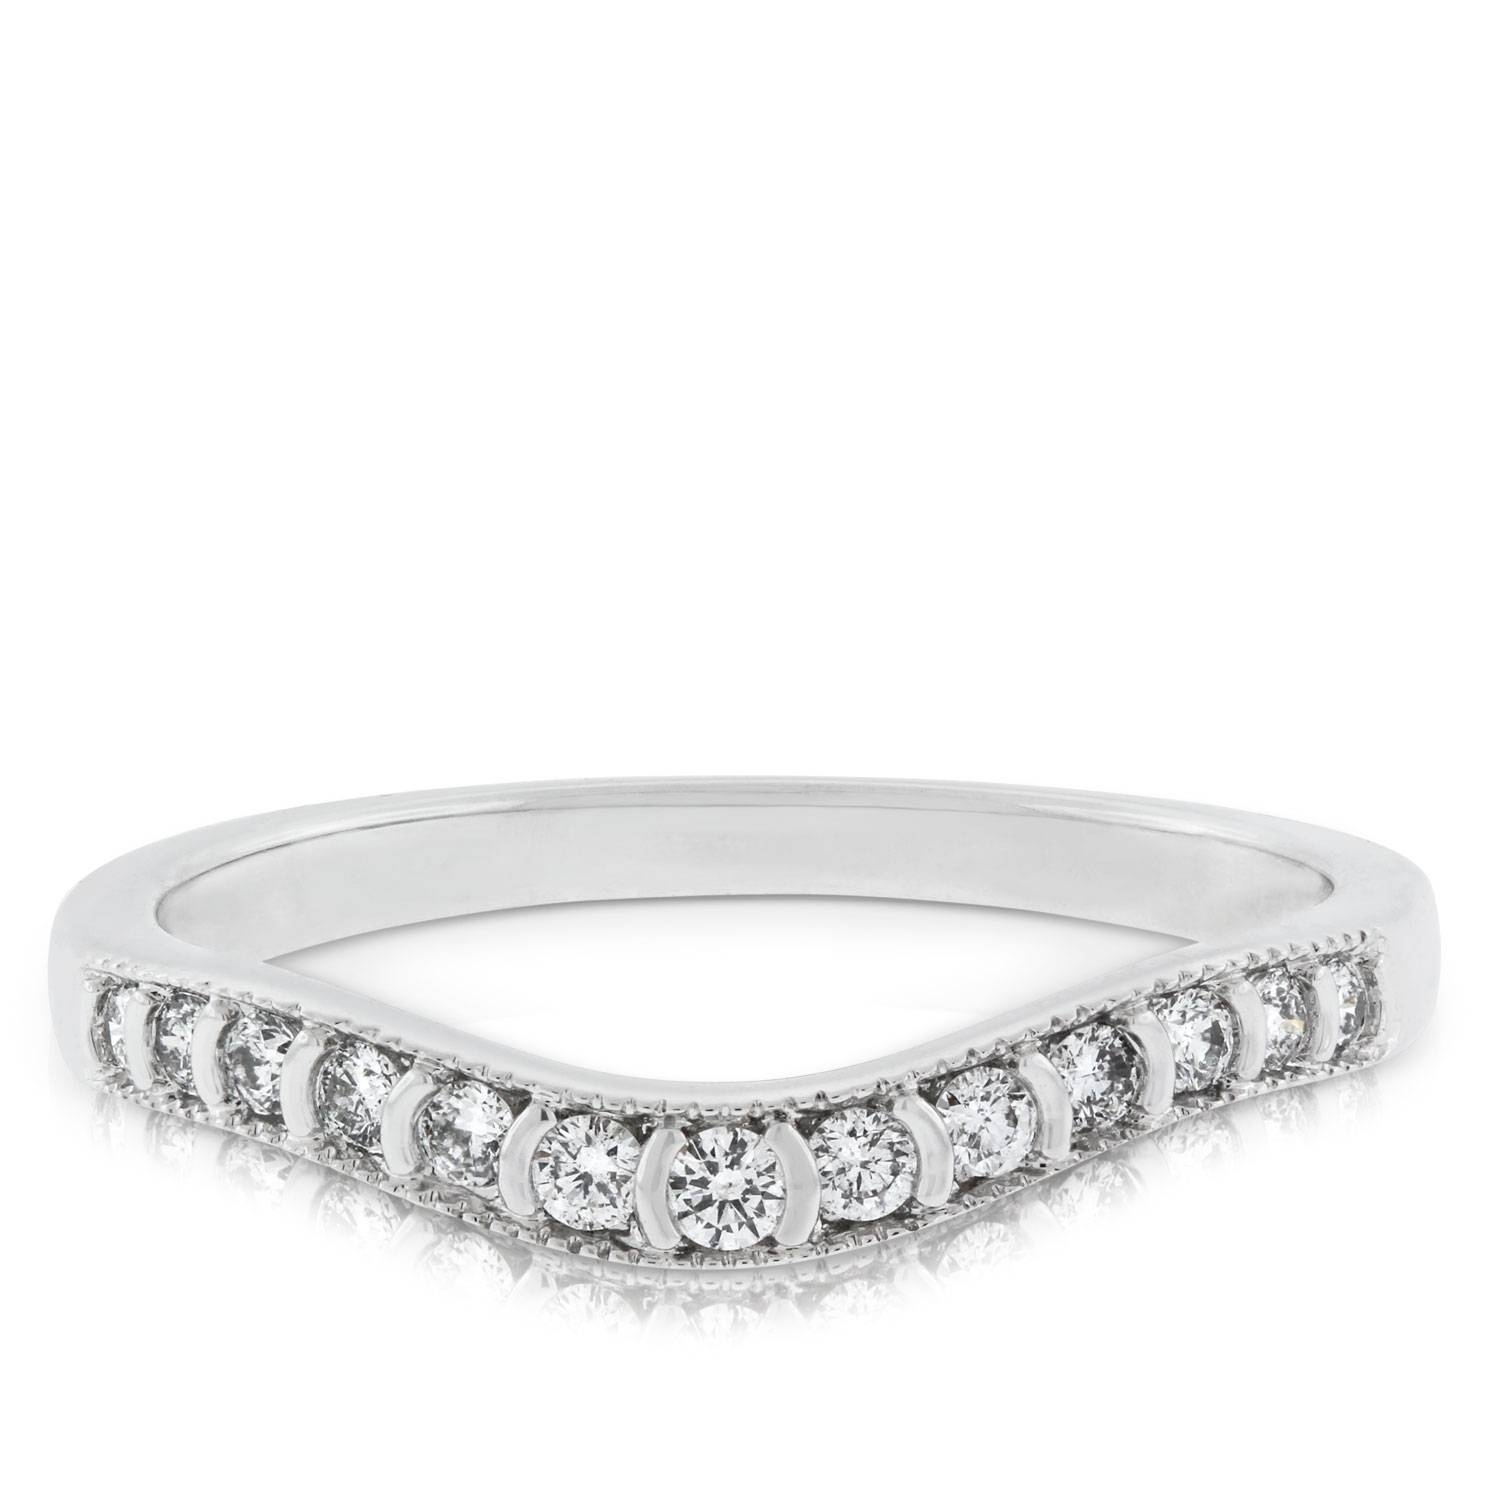 Diamond Contour Wedding Band 14k | Ben Bridge Jeweler Pertaining To Contour Wedding Bands (View 5 of 15)